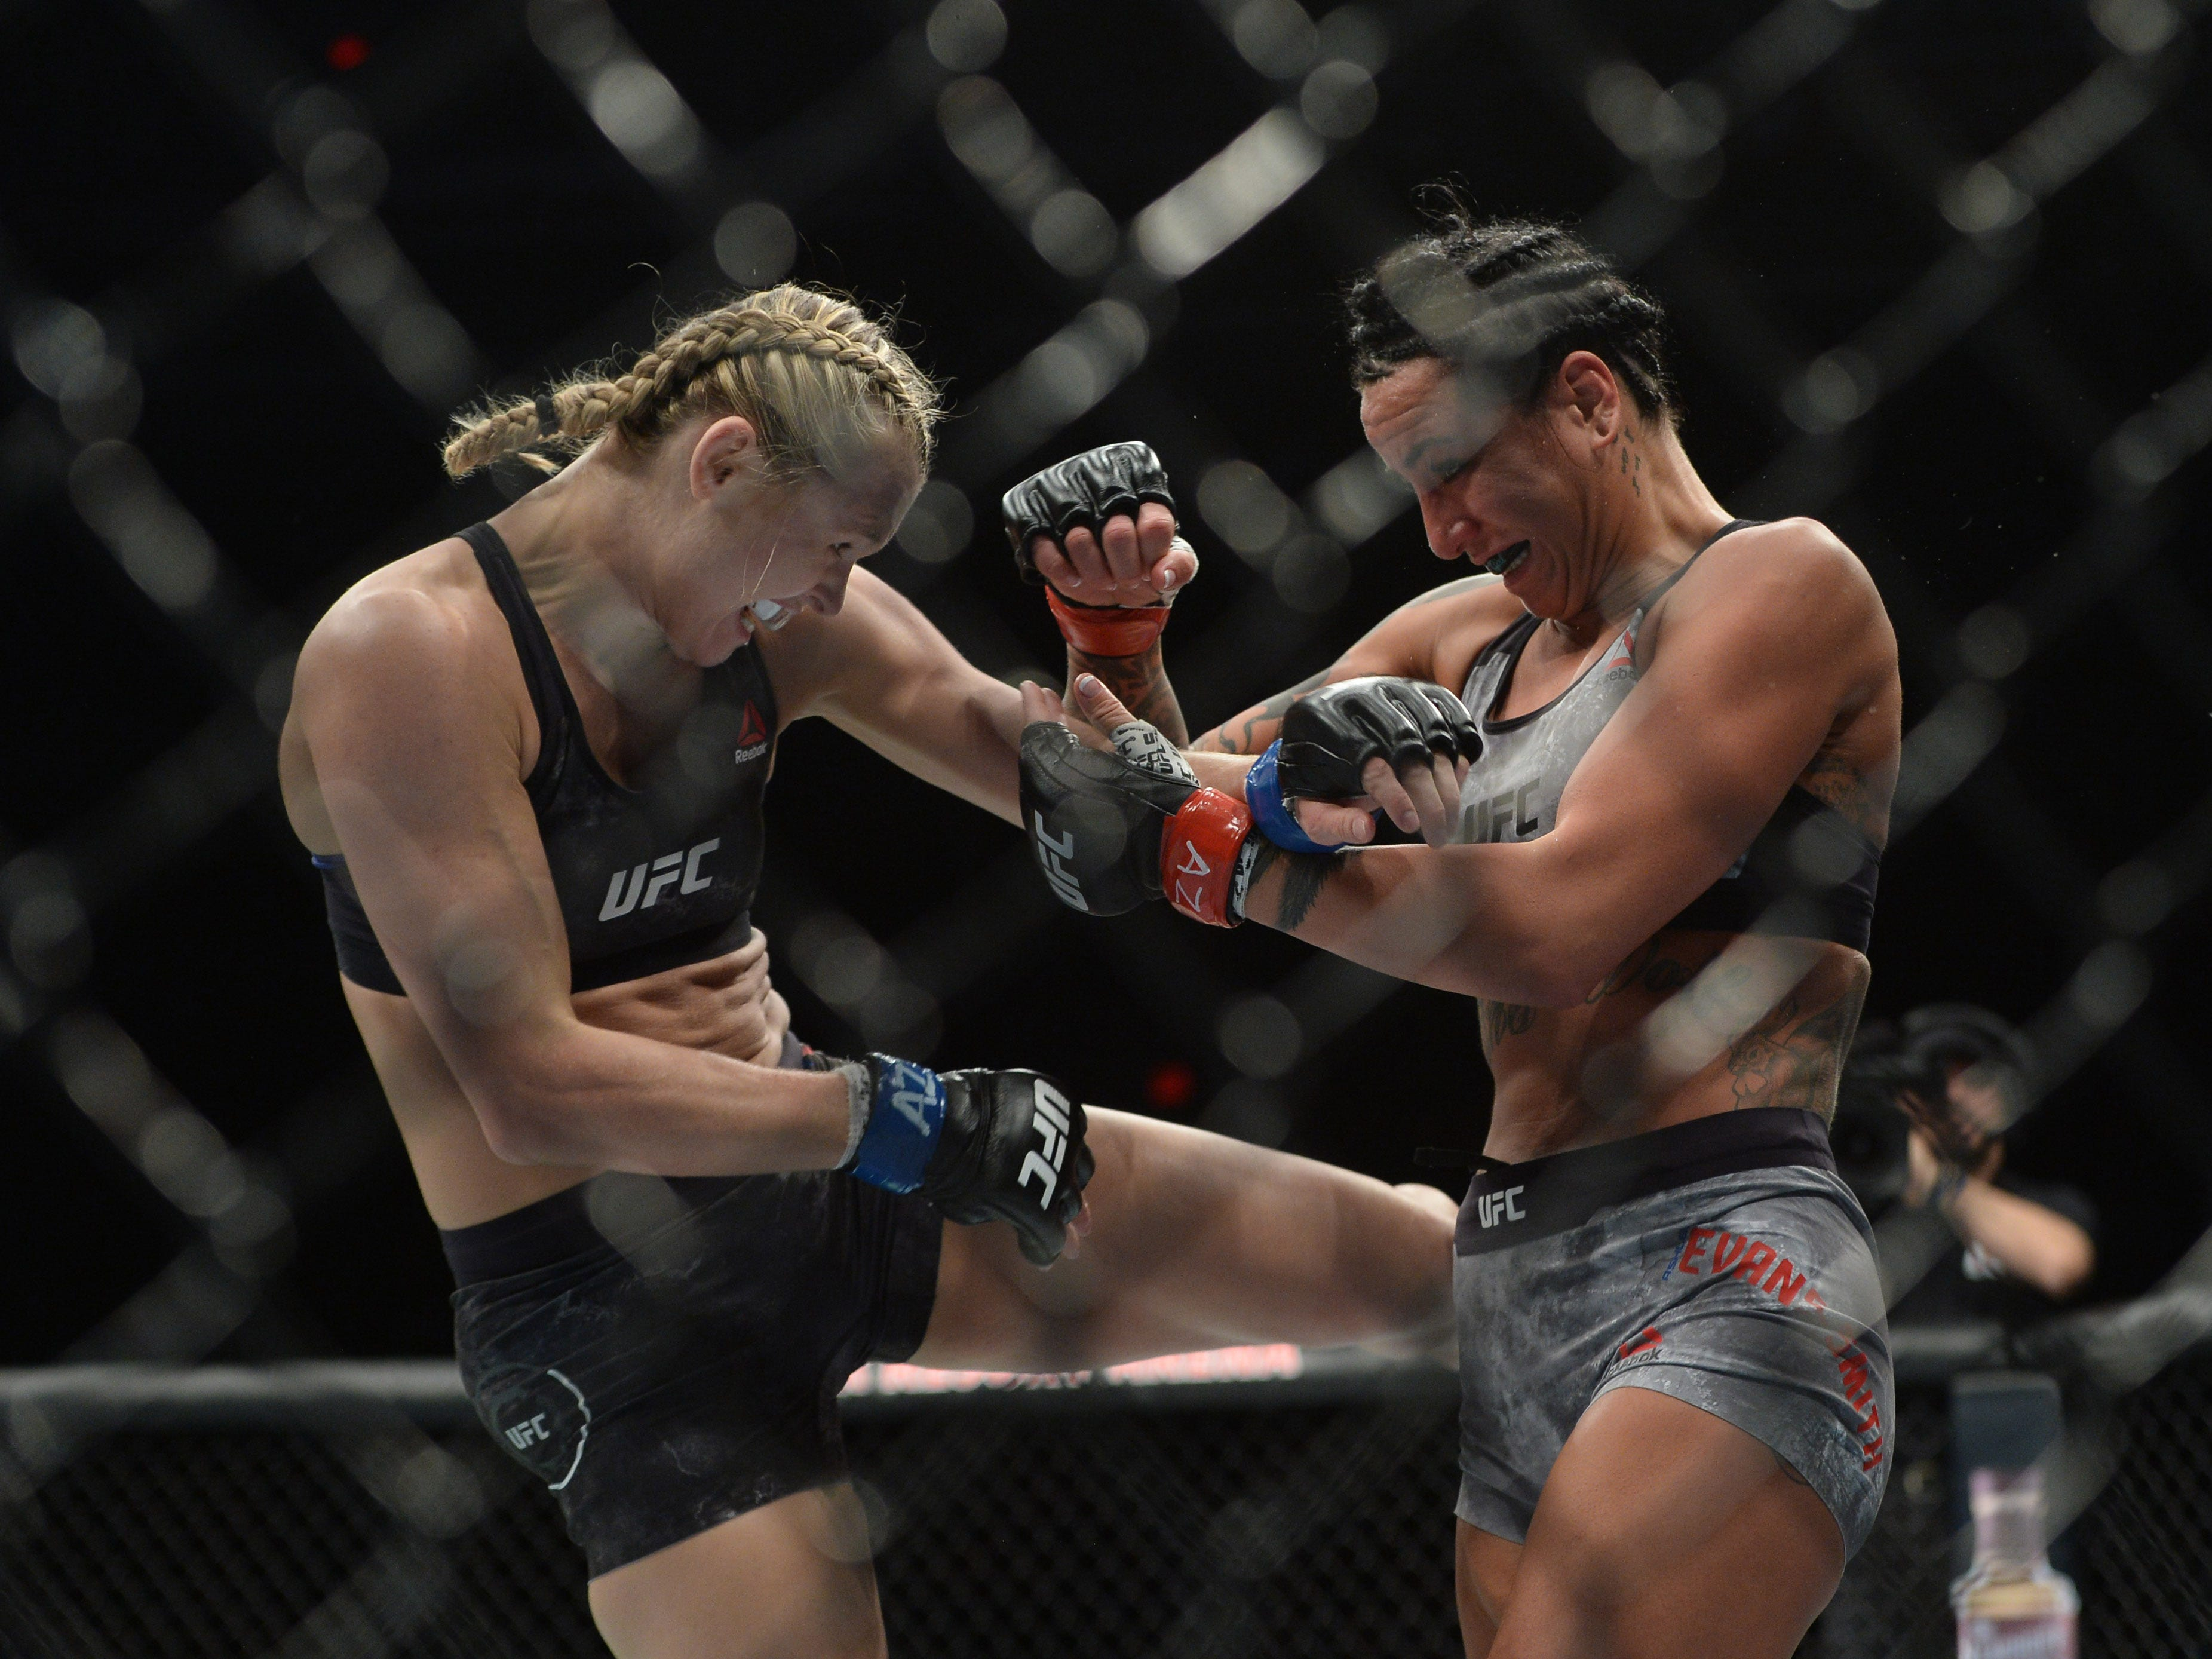 Feb 17, 2019; Phoenix, AZ, USA; Ashlee Evans-Smith (red gloves) and Andrea Lee (blue gloves) fight during their flyweight bout during UFC Fight Night at Talking Stick Resort Arena. Lee won via decision. Mandatory Credit: Joe Camporeale-USA TODAY Sports